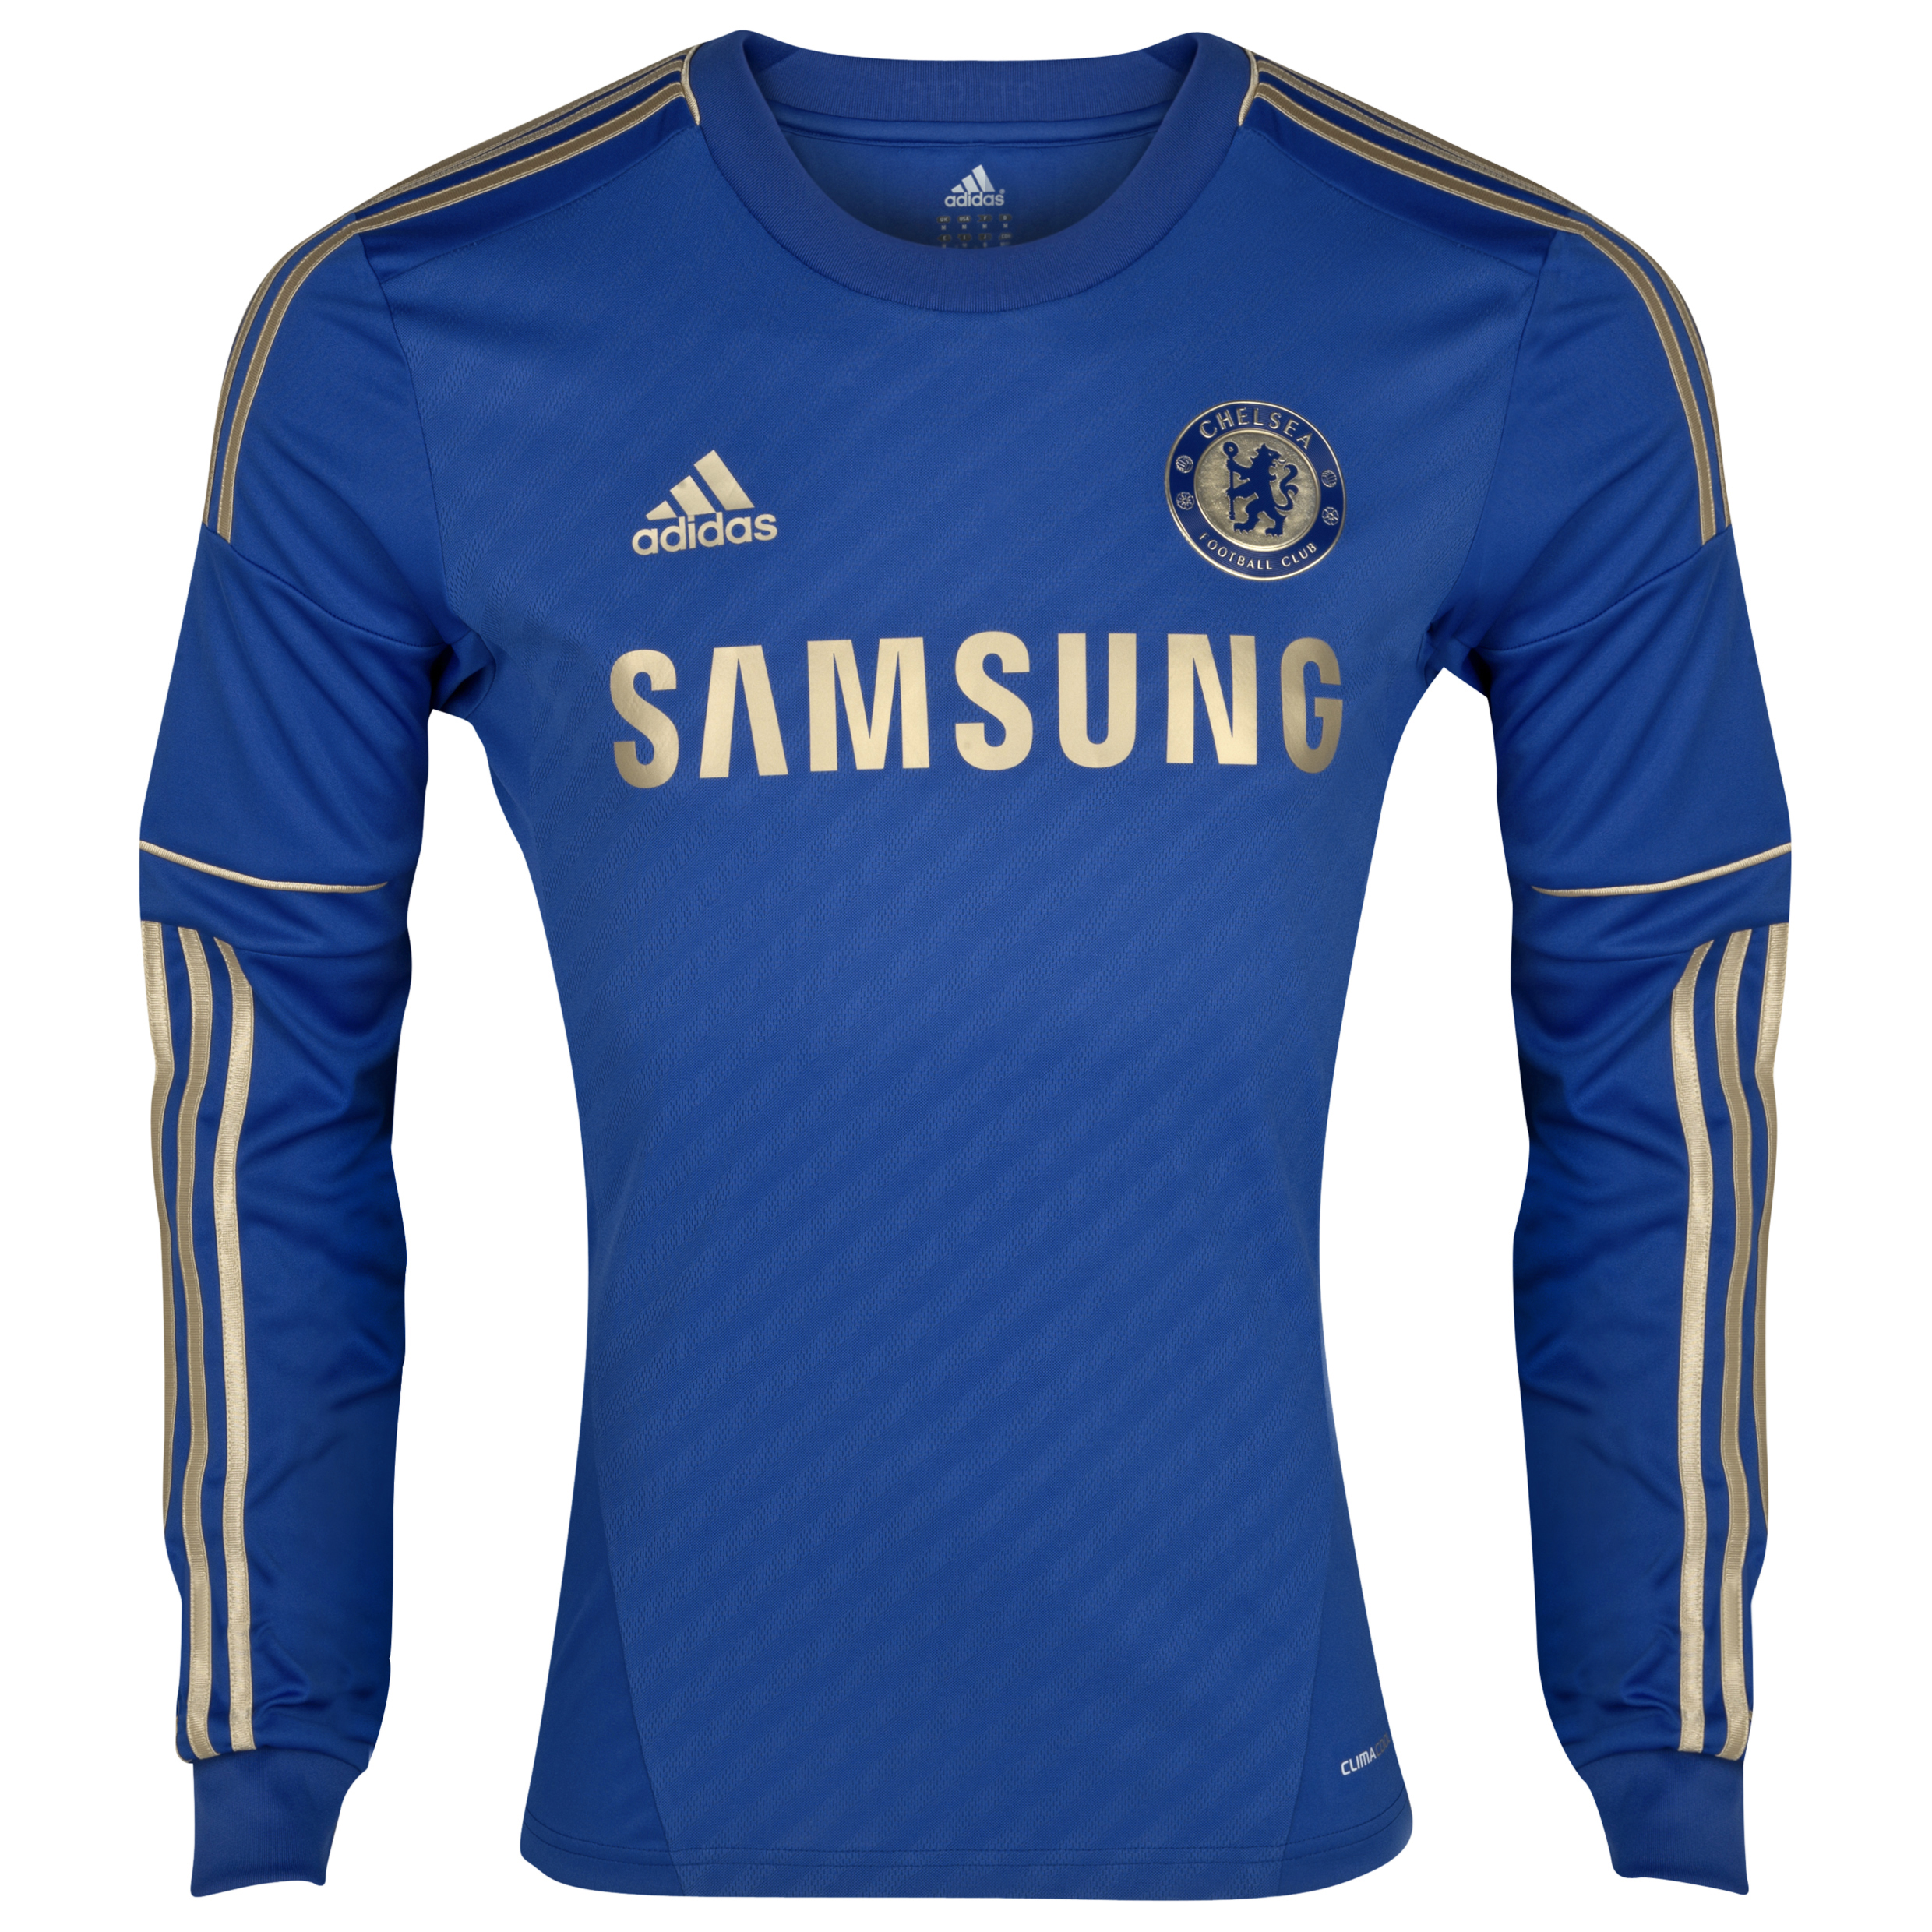 Chelsea Home Shirt 2012/13 - Long Sleeved